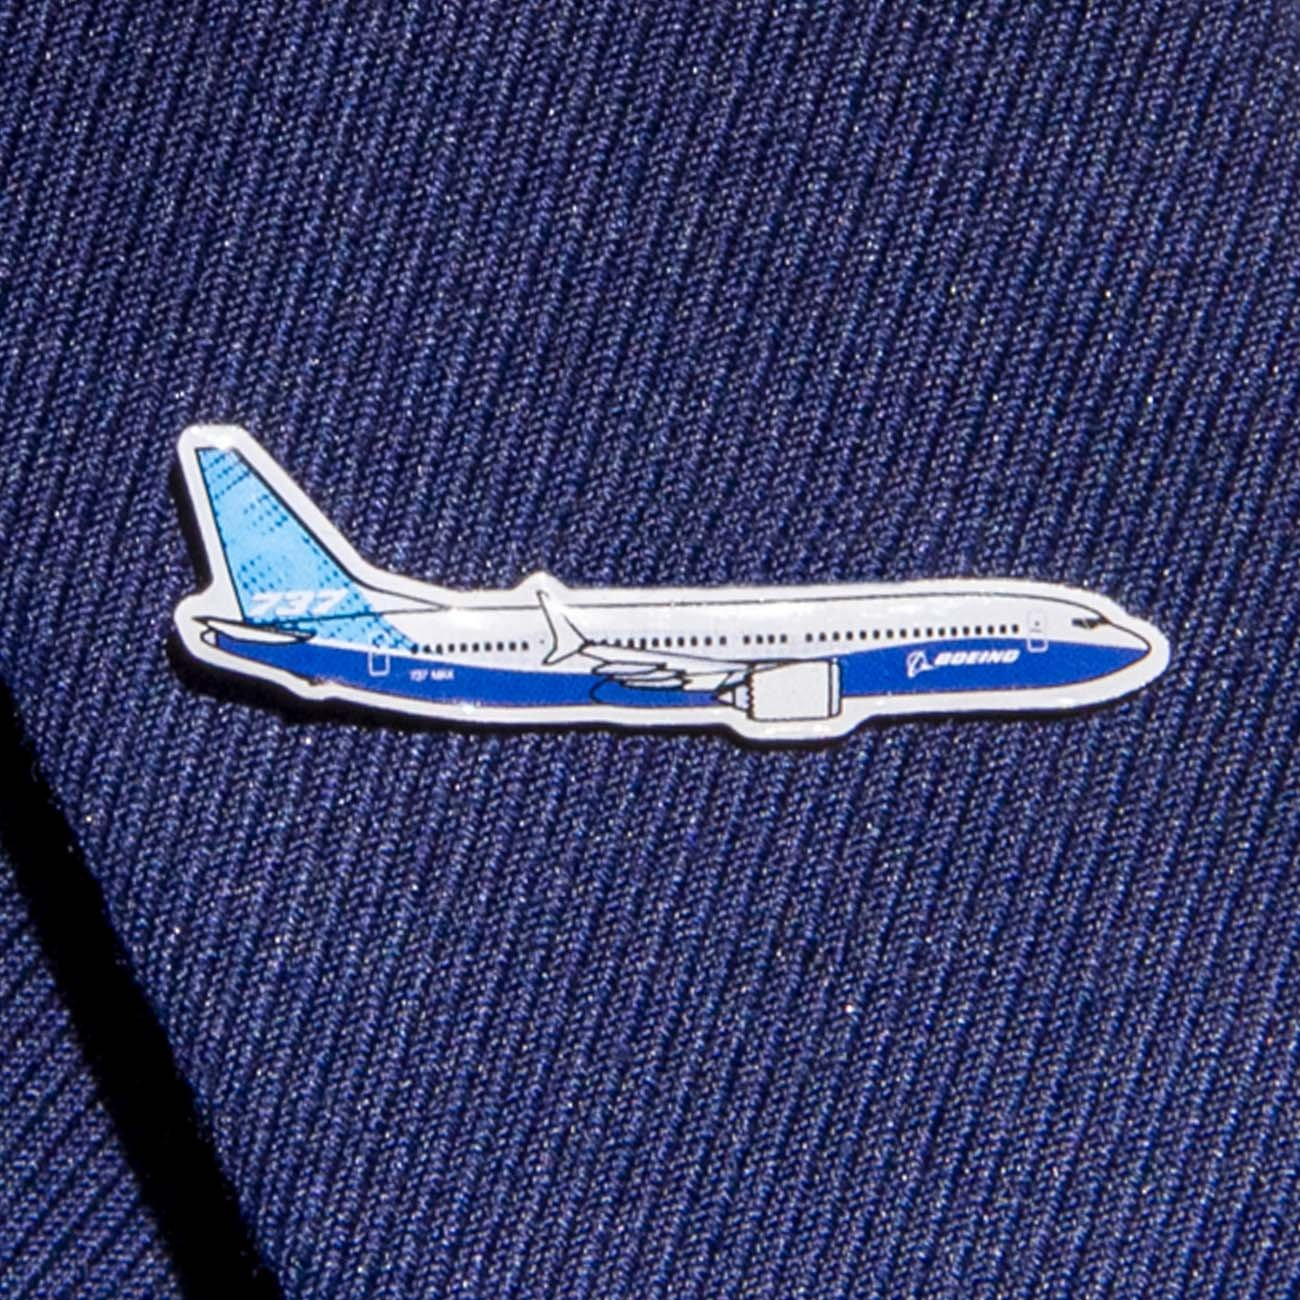 Boeing Illustrated 737 MAX Lapel Pin